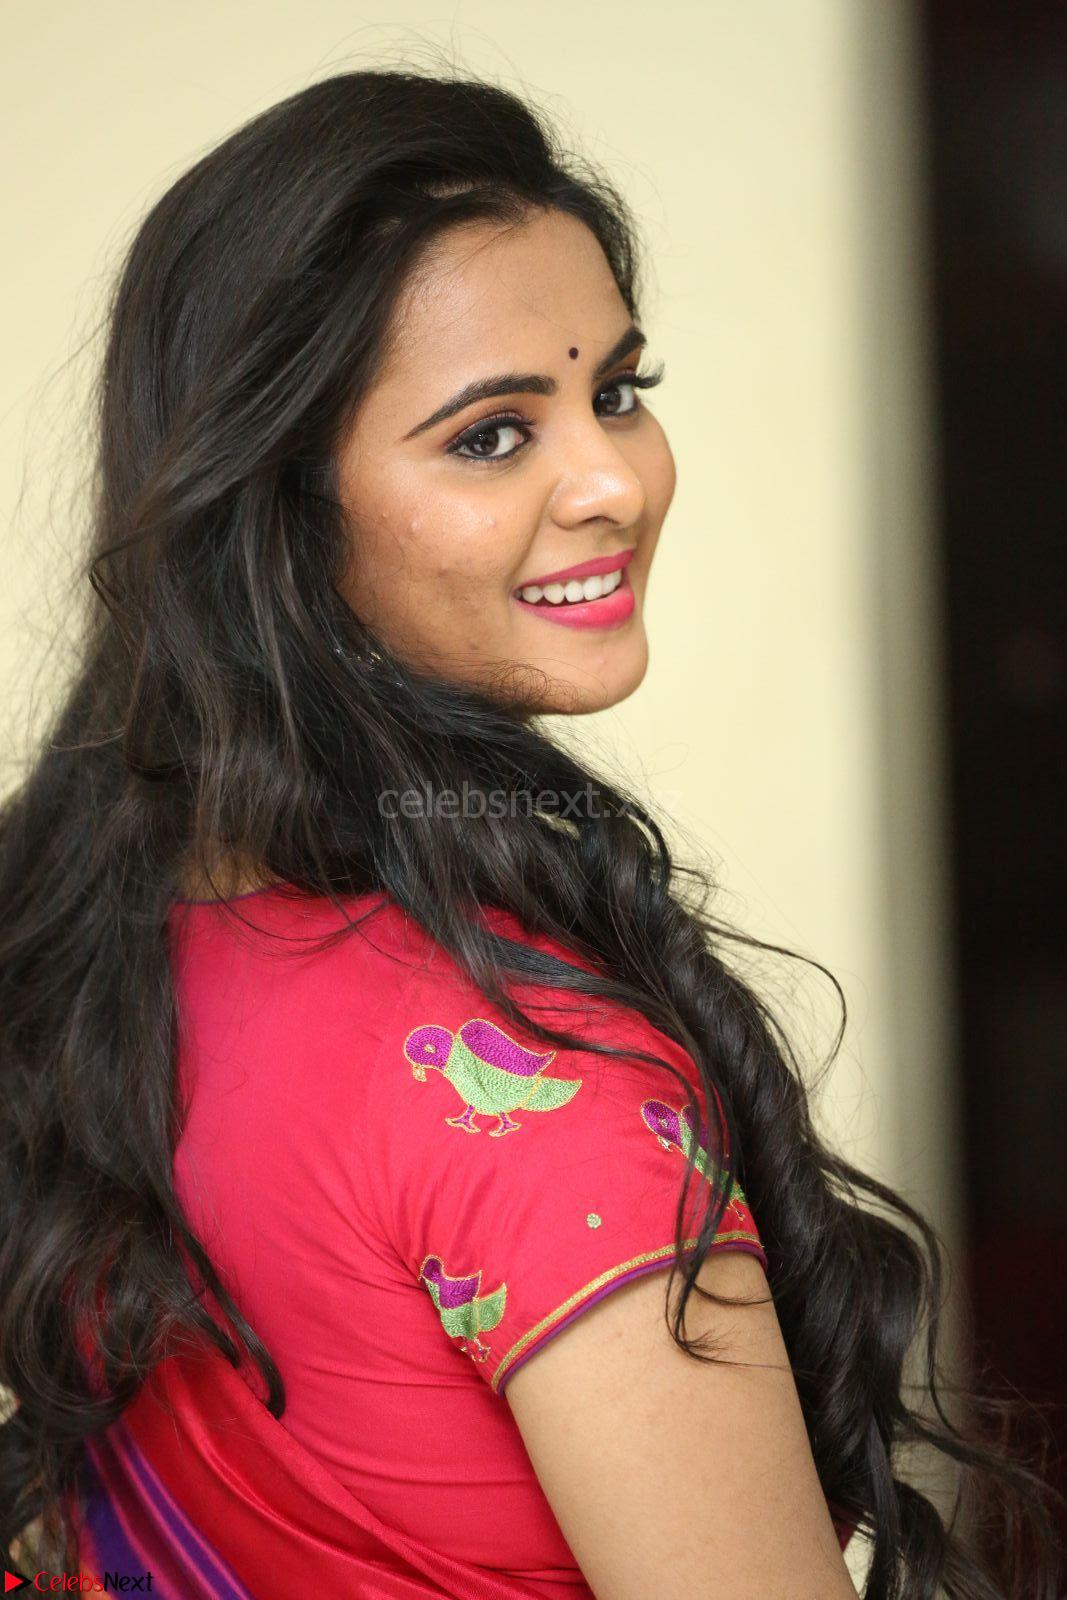 Manasa In Pink Salwar At Fashion Designer Son Of Ladies Tailor Press Meet Pics Exclusive 02 Manasa In Pink Salwar At Fashion Designer Son Of Ladies Tailor Press Meet Pics Celebsnext Exclusive